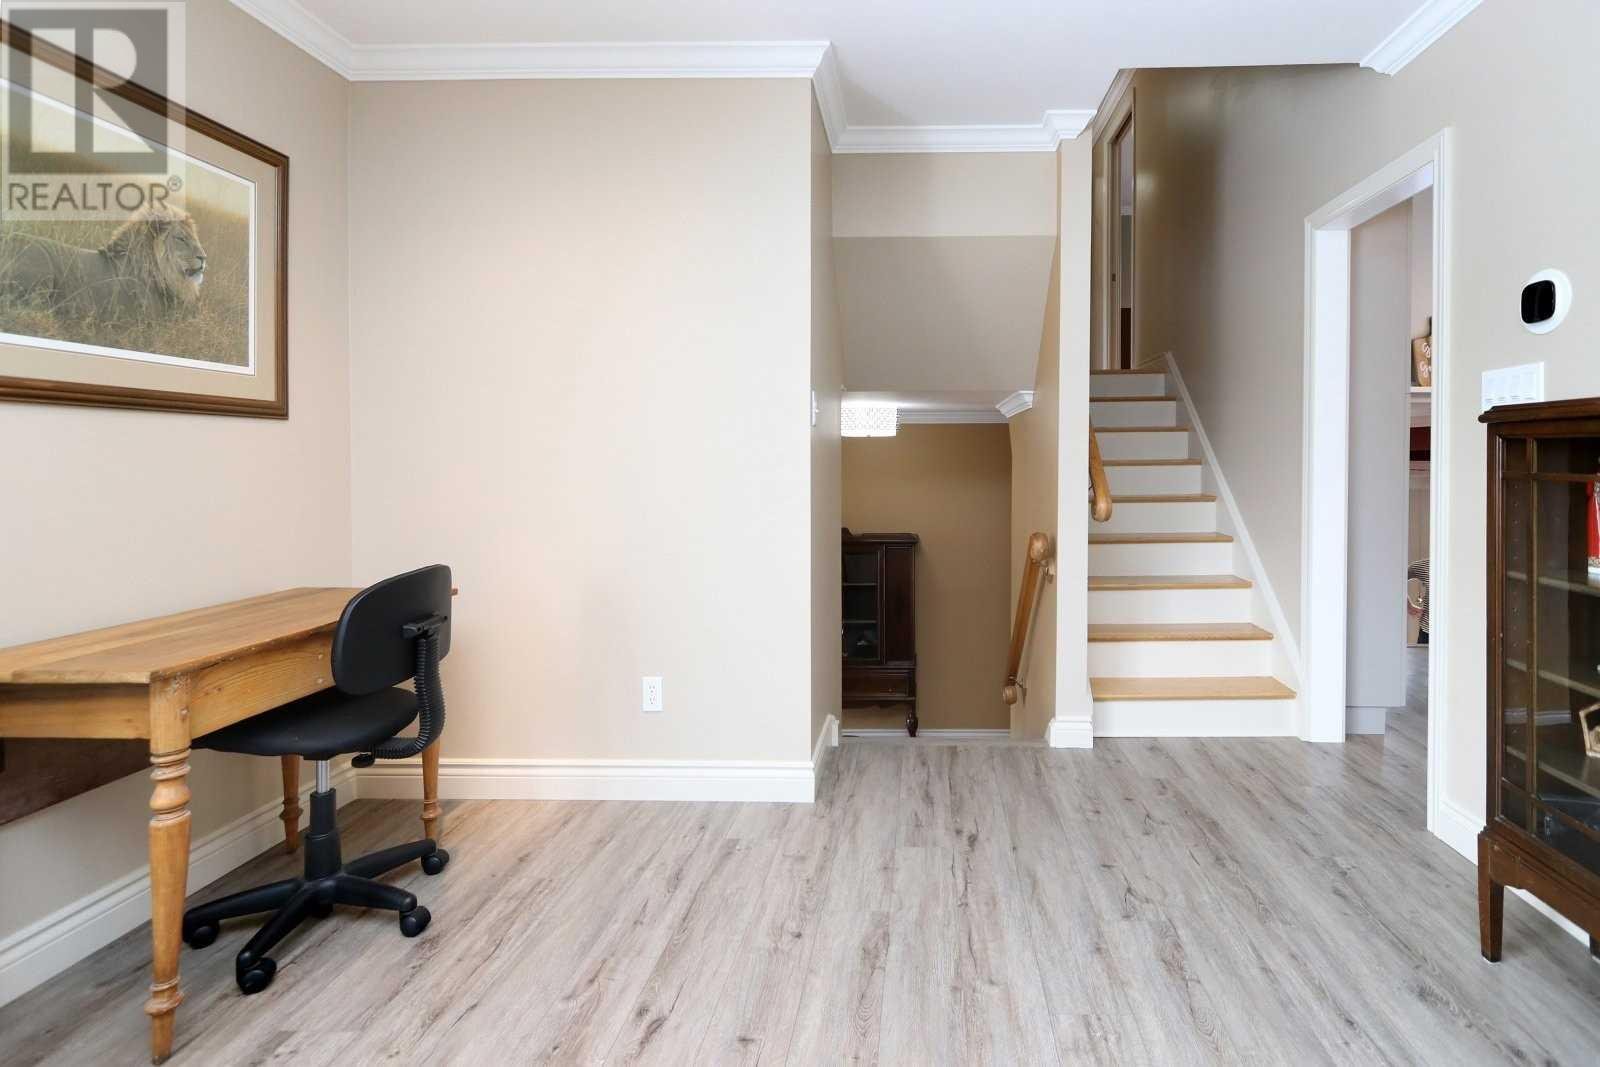 2524 Windjammer Rd, Mississauga, Ontario  L5L 1H9 - Photo 13 - W4675885